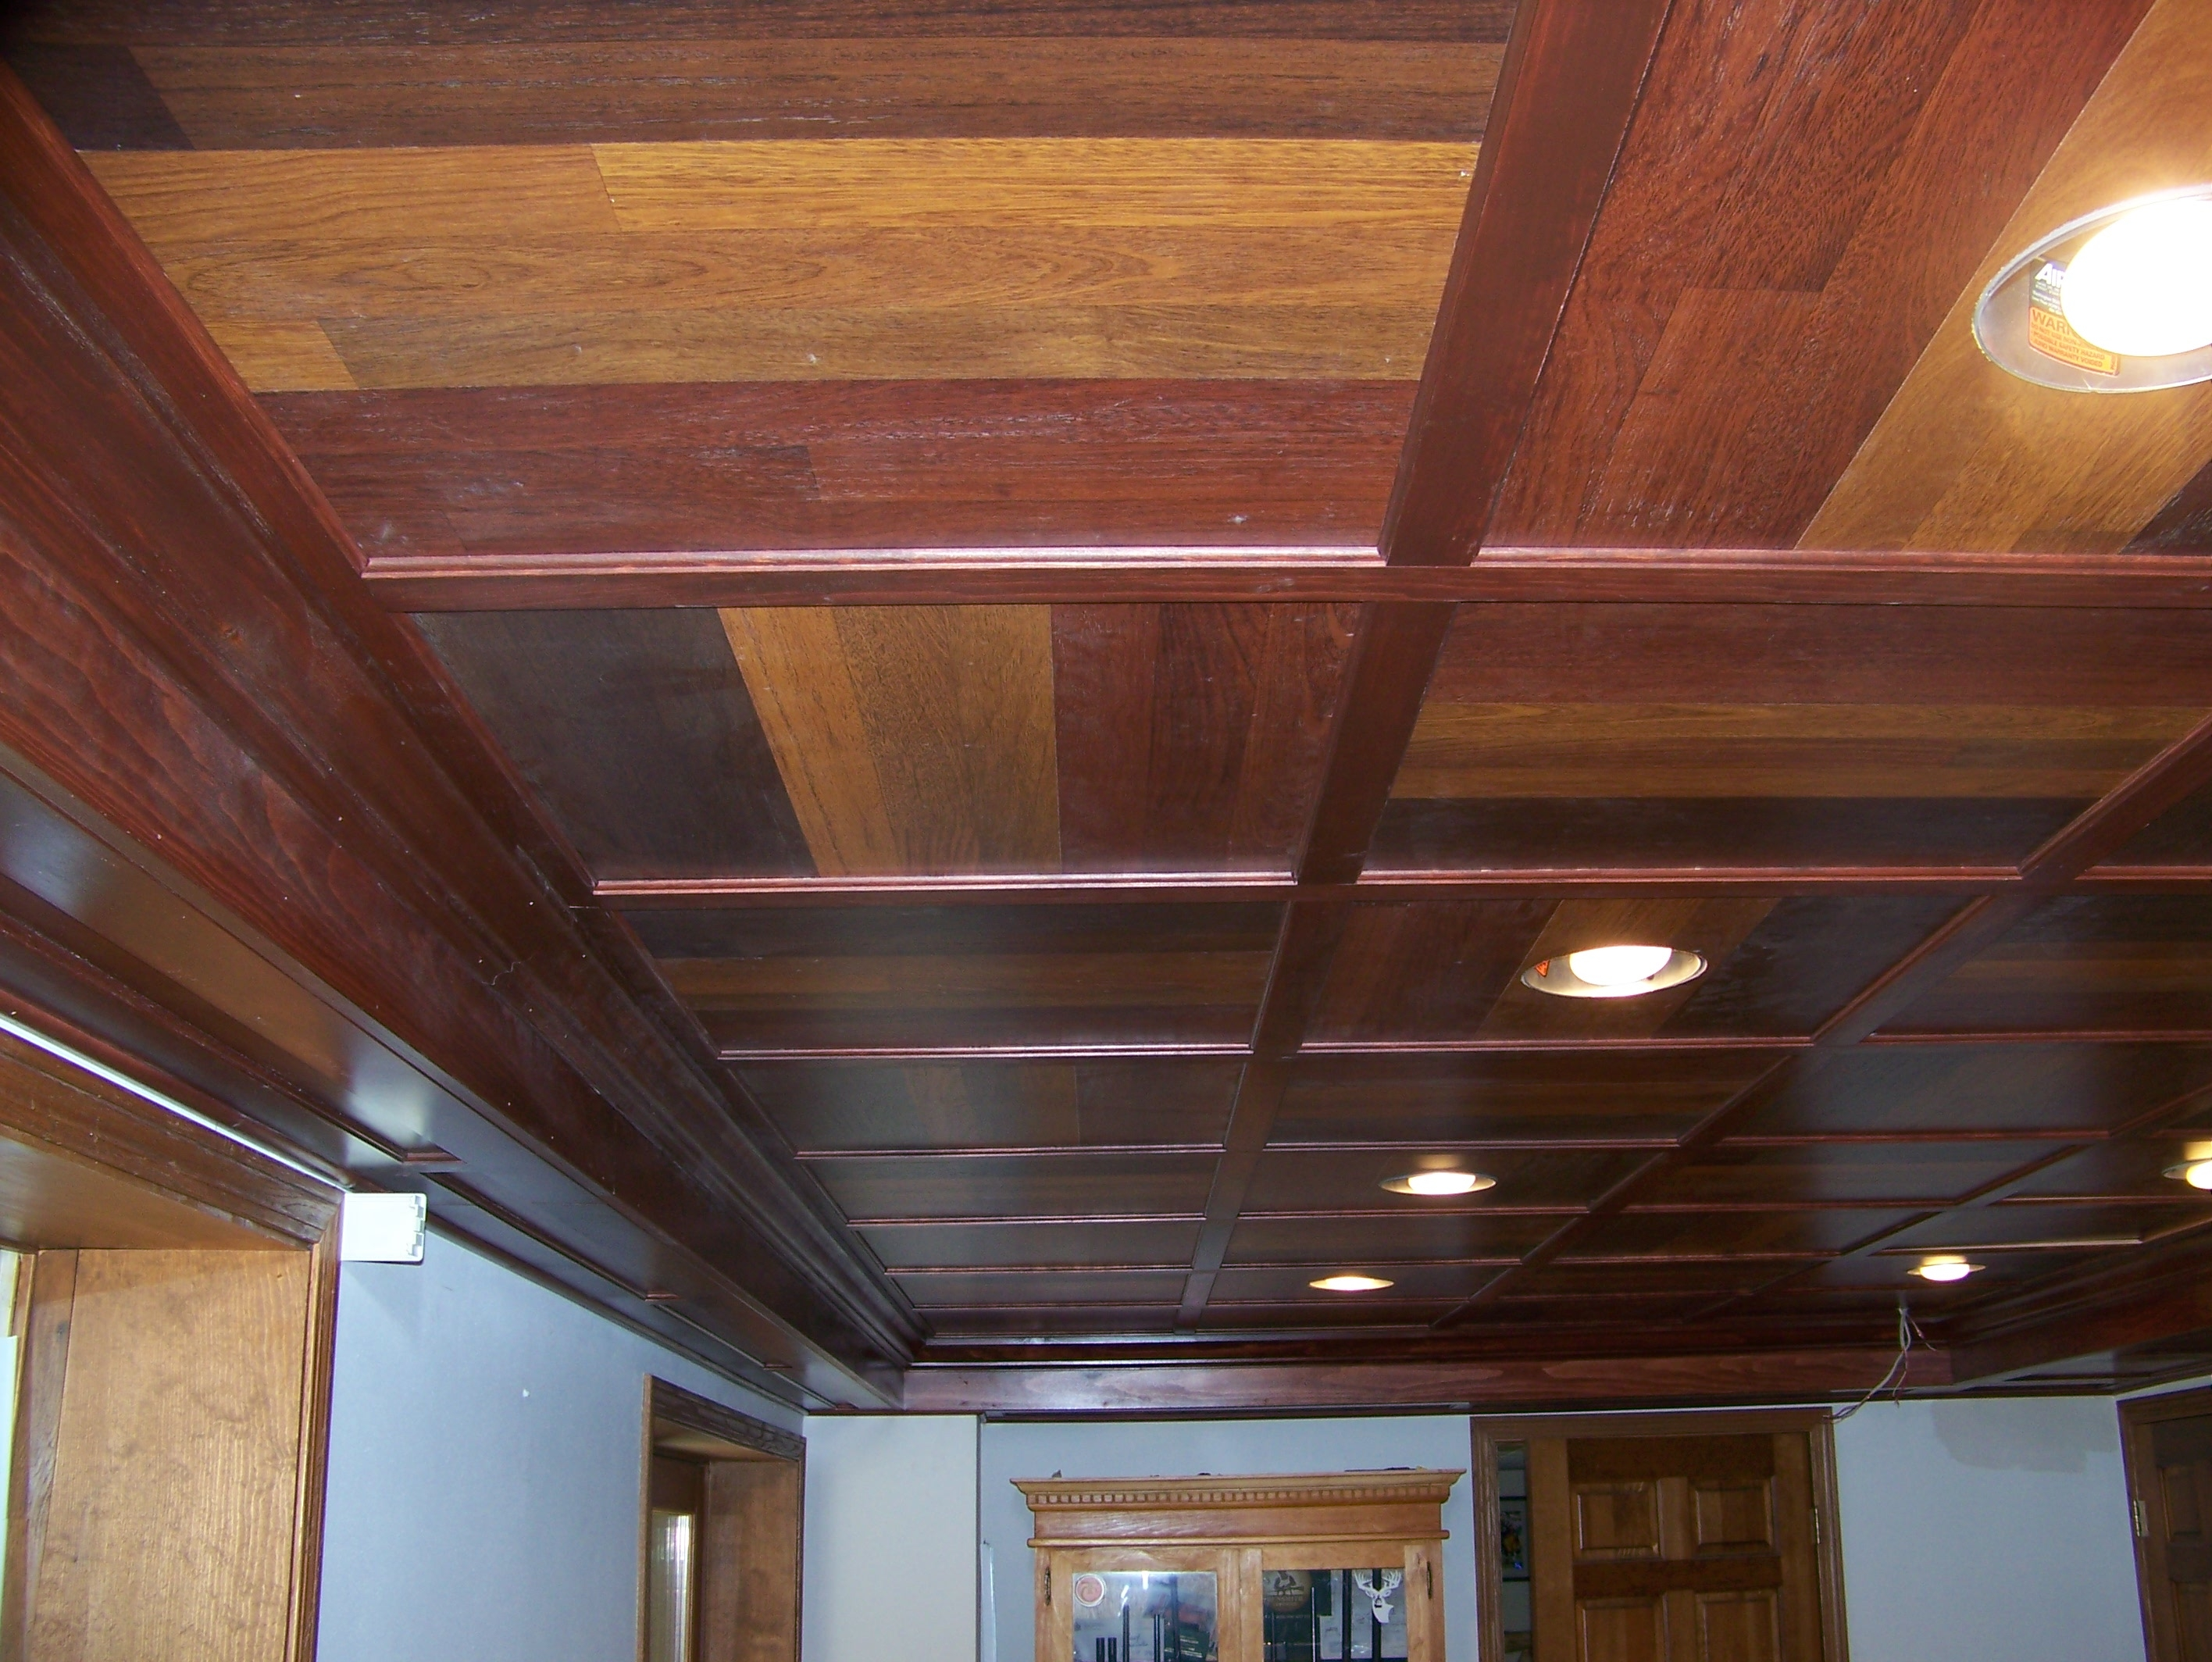 Ceiling Tiles For Basement Bathroomwooden basement ceiling with modern lighting drop ceiling tiles